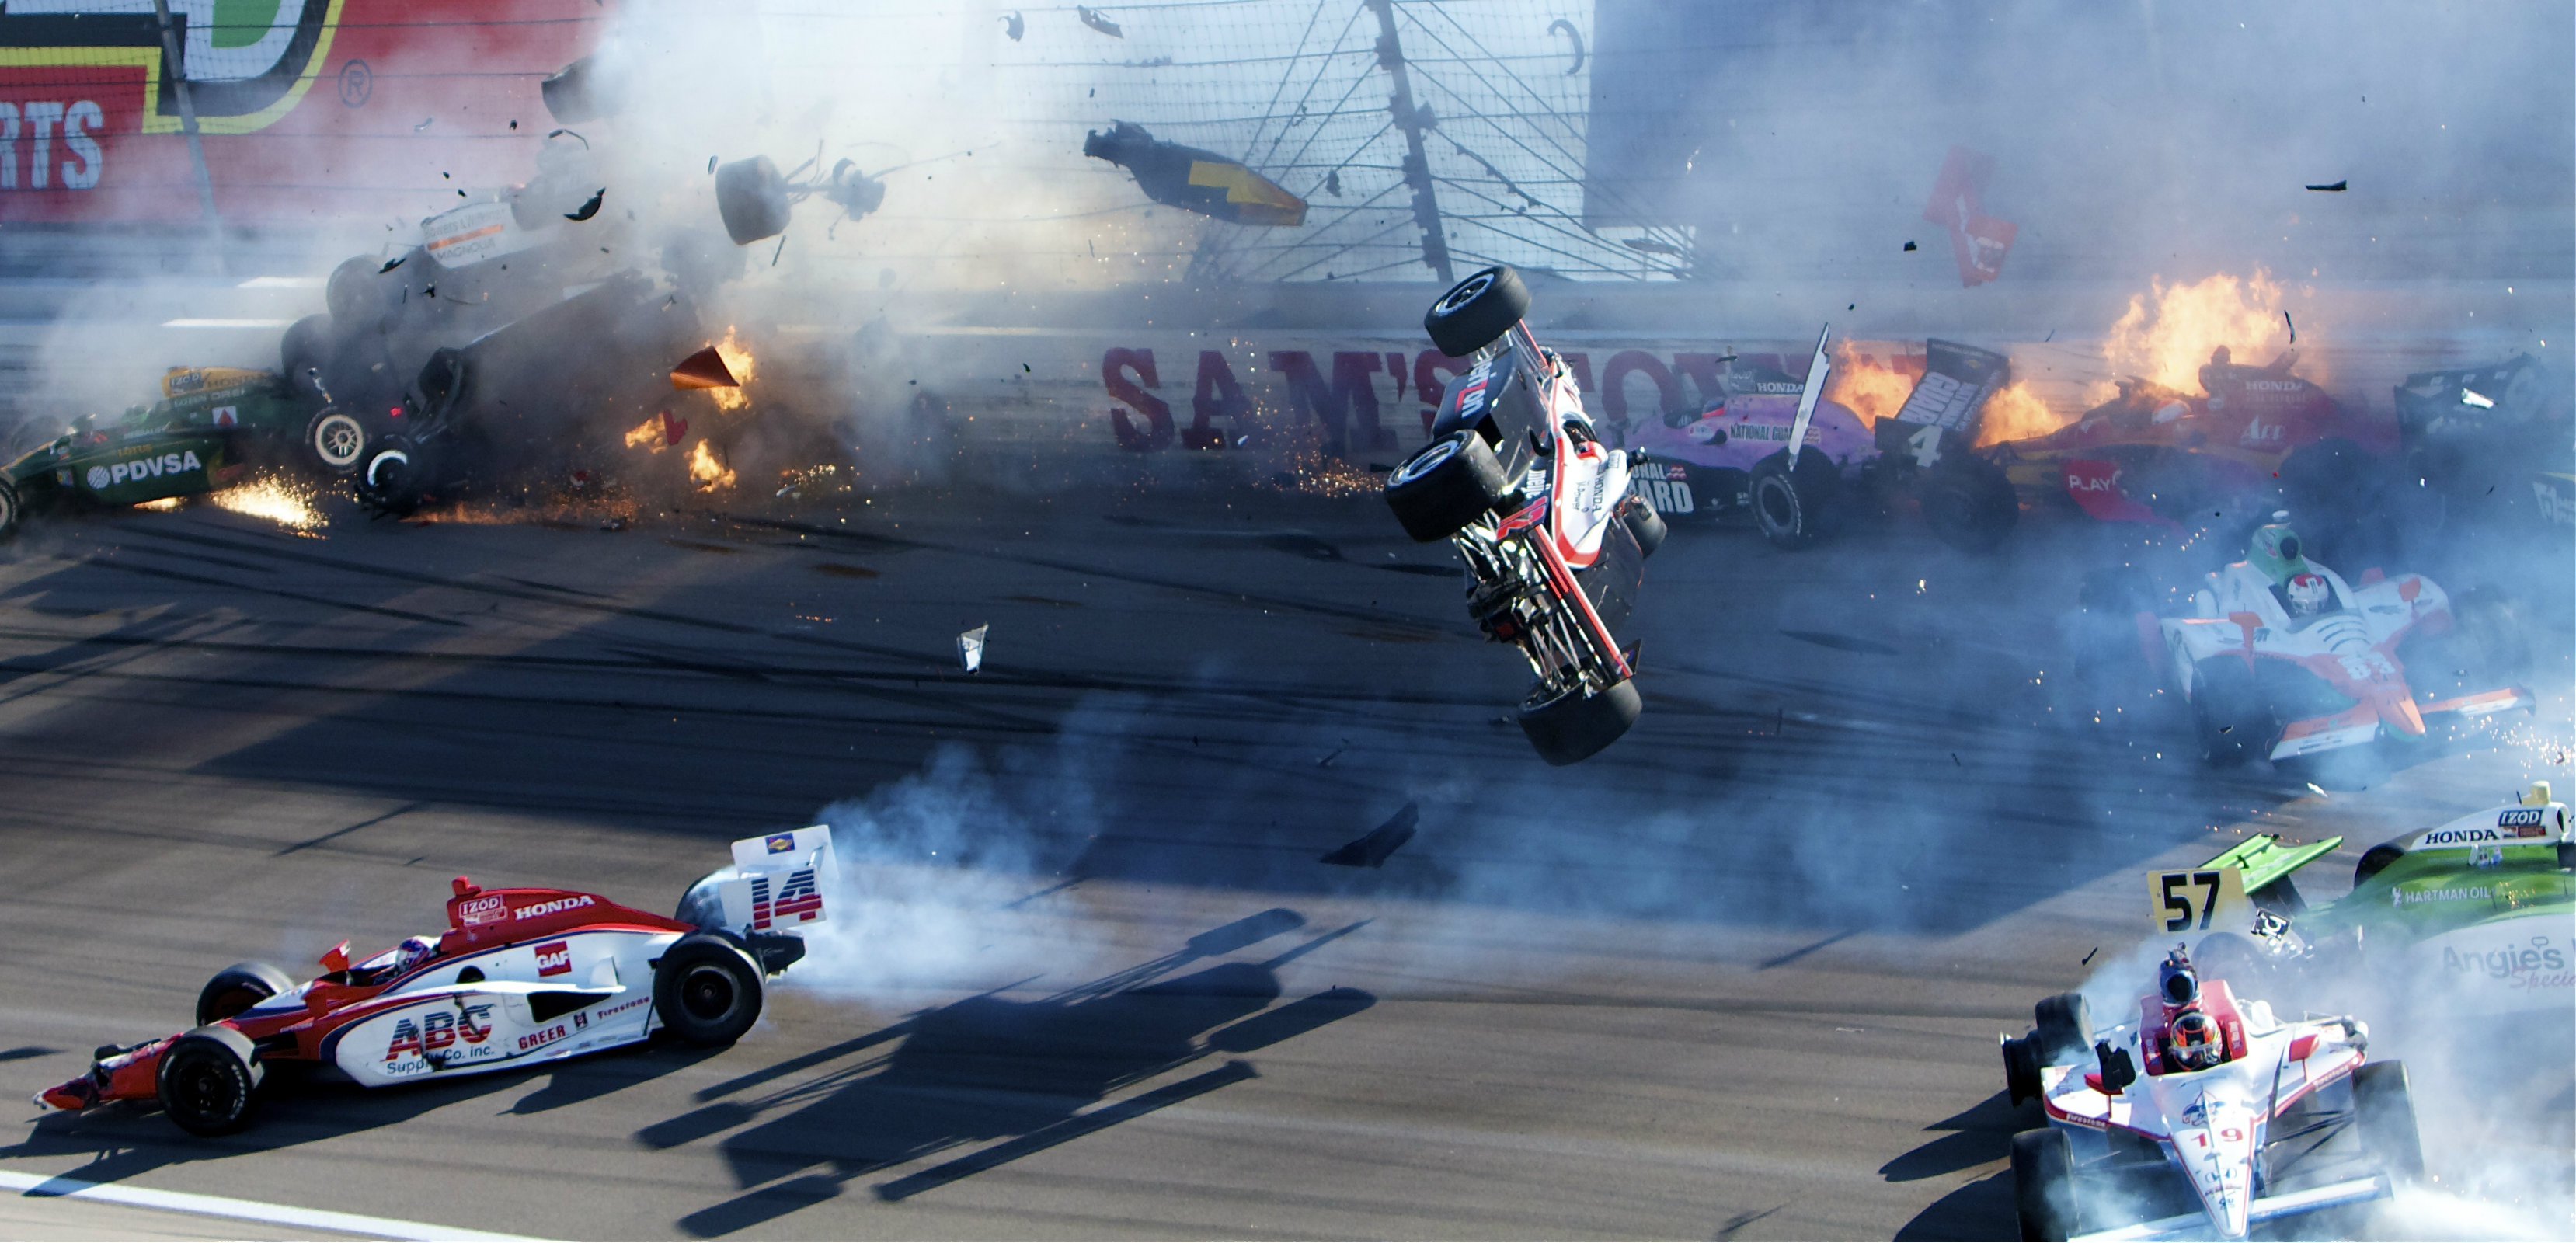 20 deadliest race car crashes in history